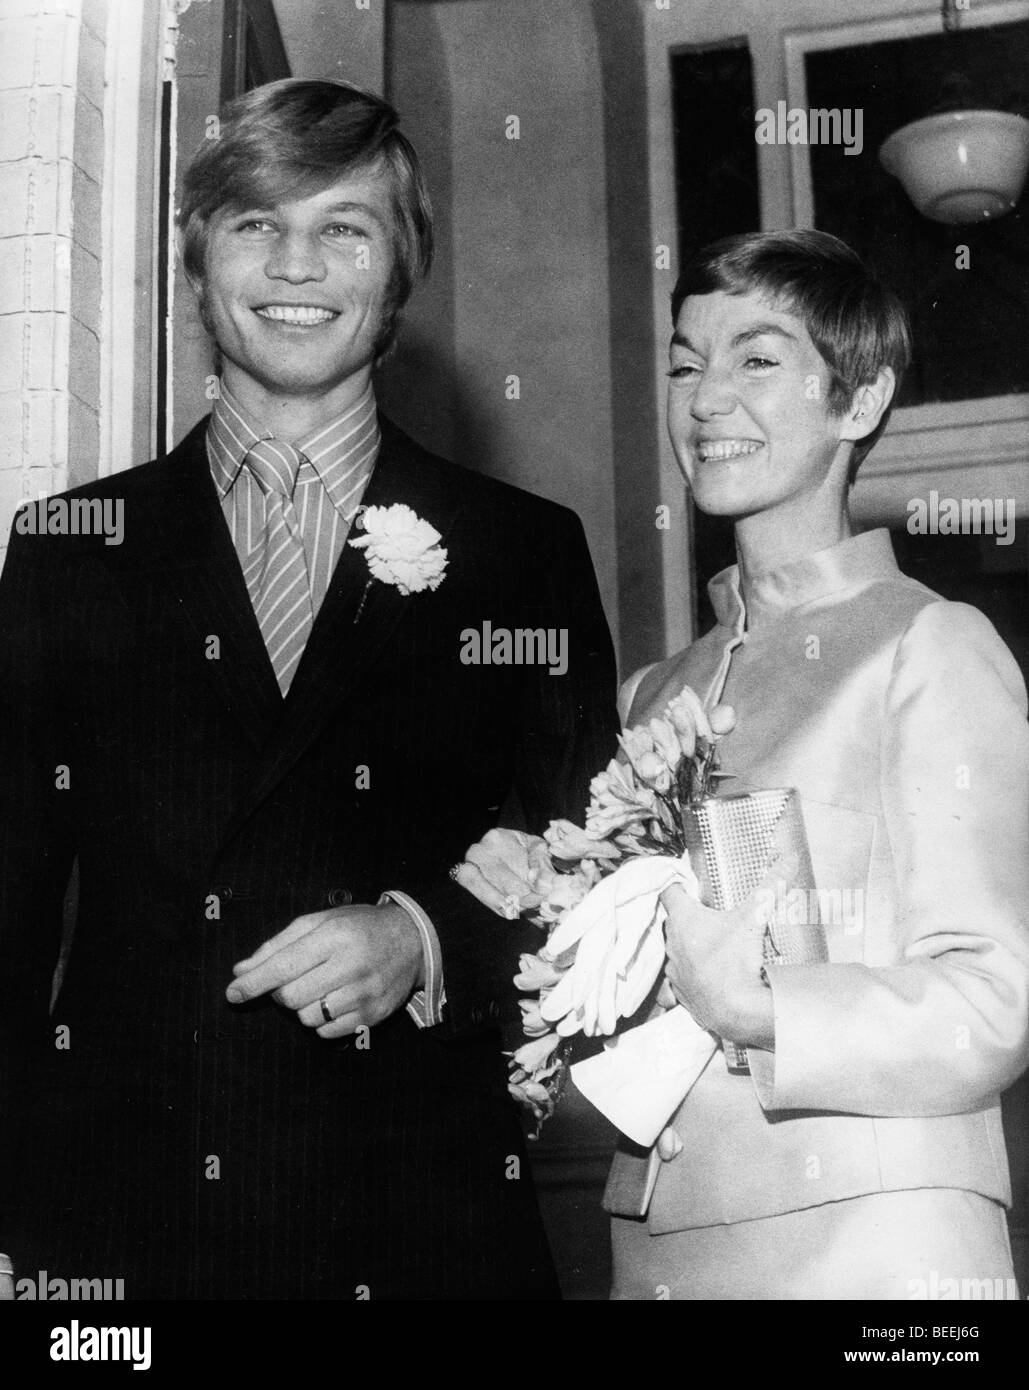 Actor Michael York is married to Patricia McCallum in 1968. Stock Photo